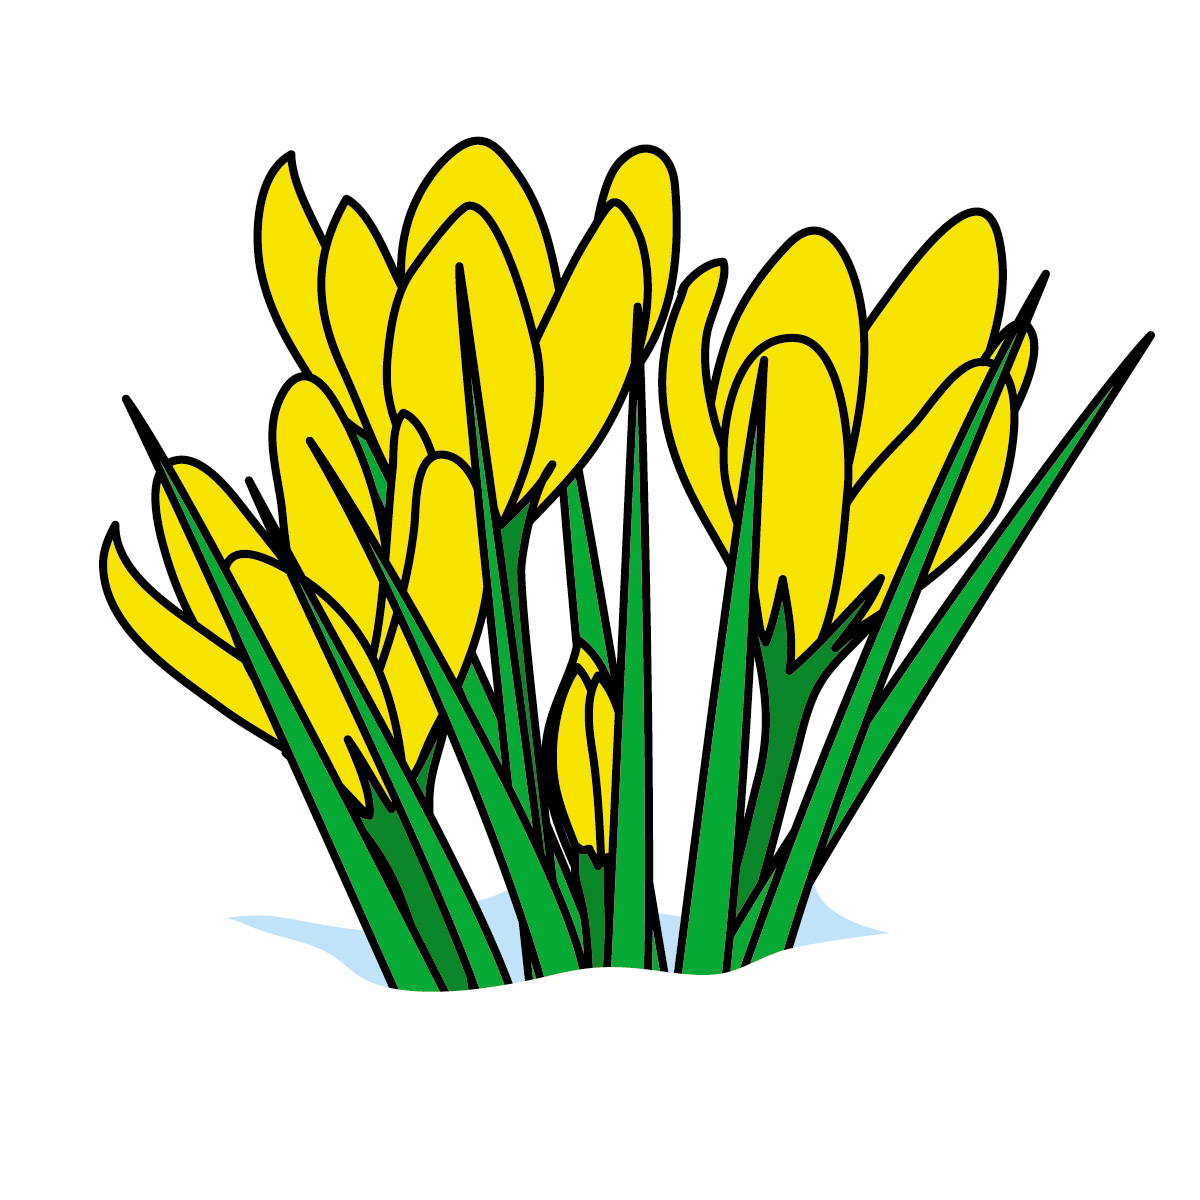 1200x1200 March Flowers Clip Art